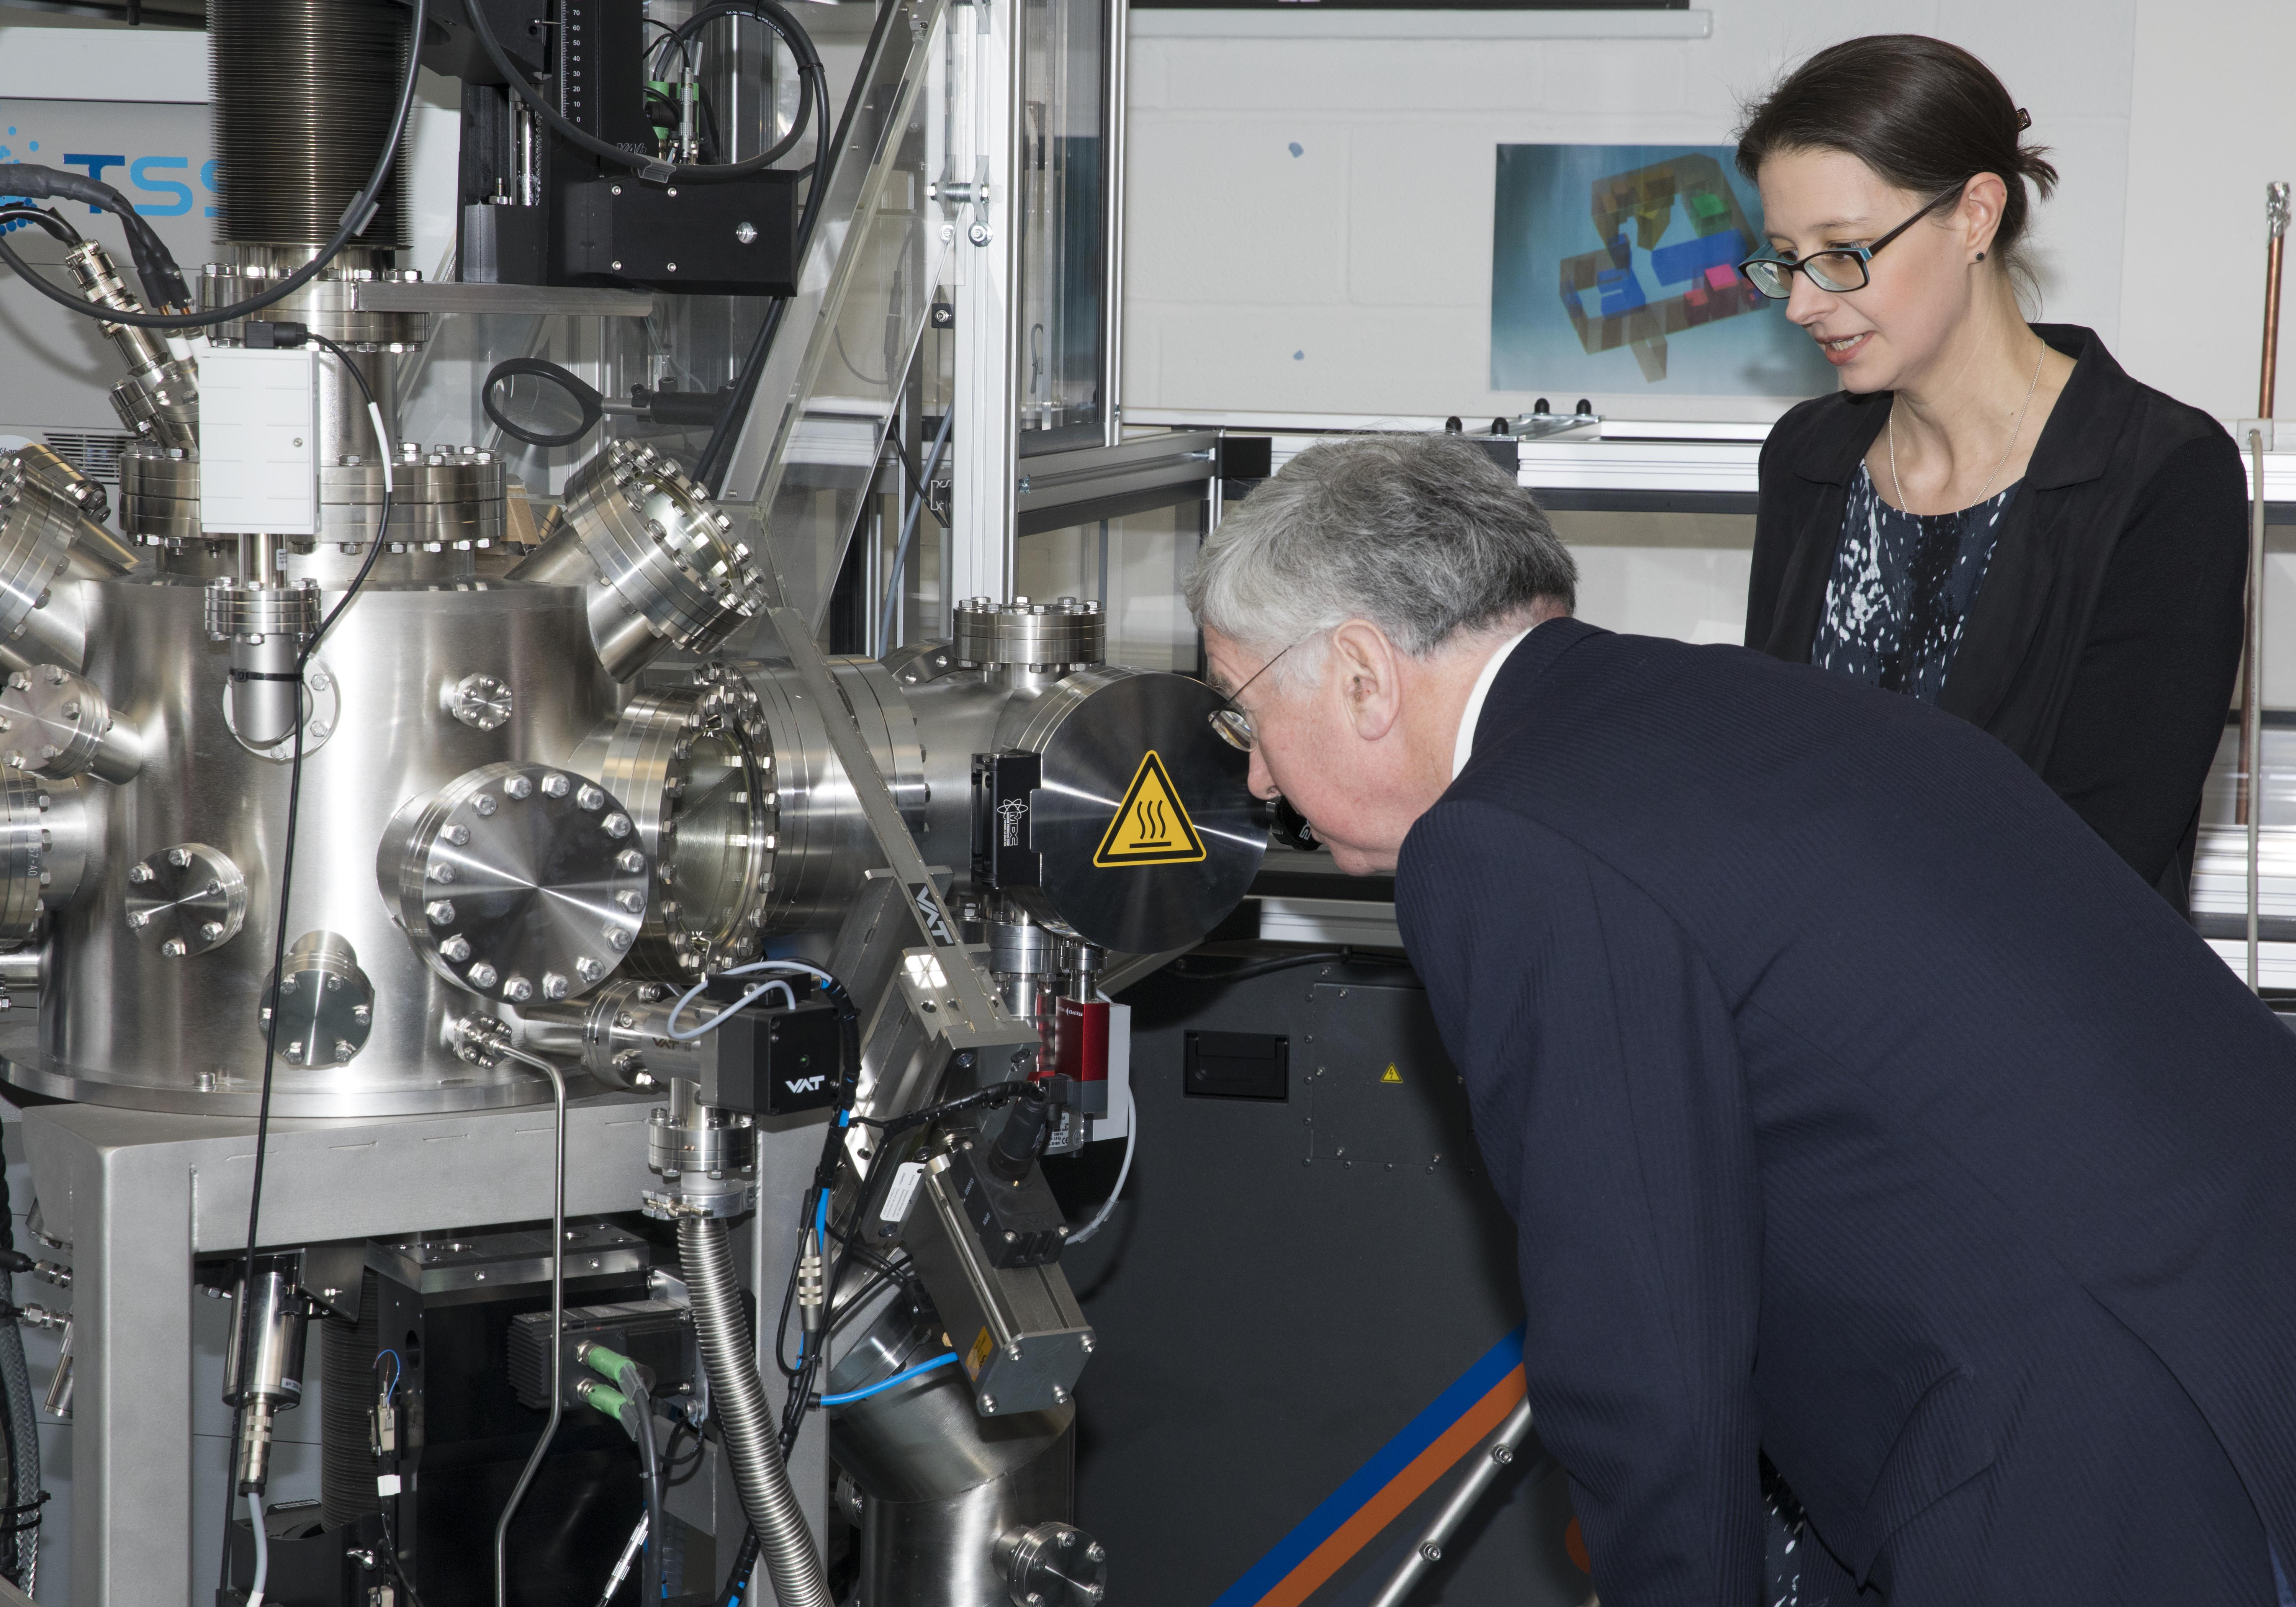 New Oxford superconductor centre energises high-tech innovation